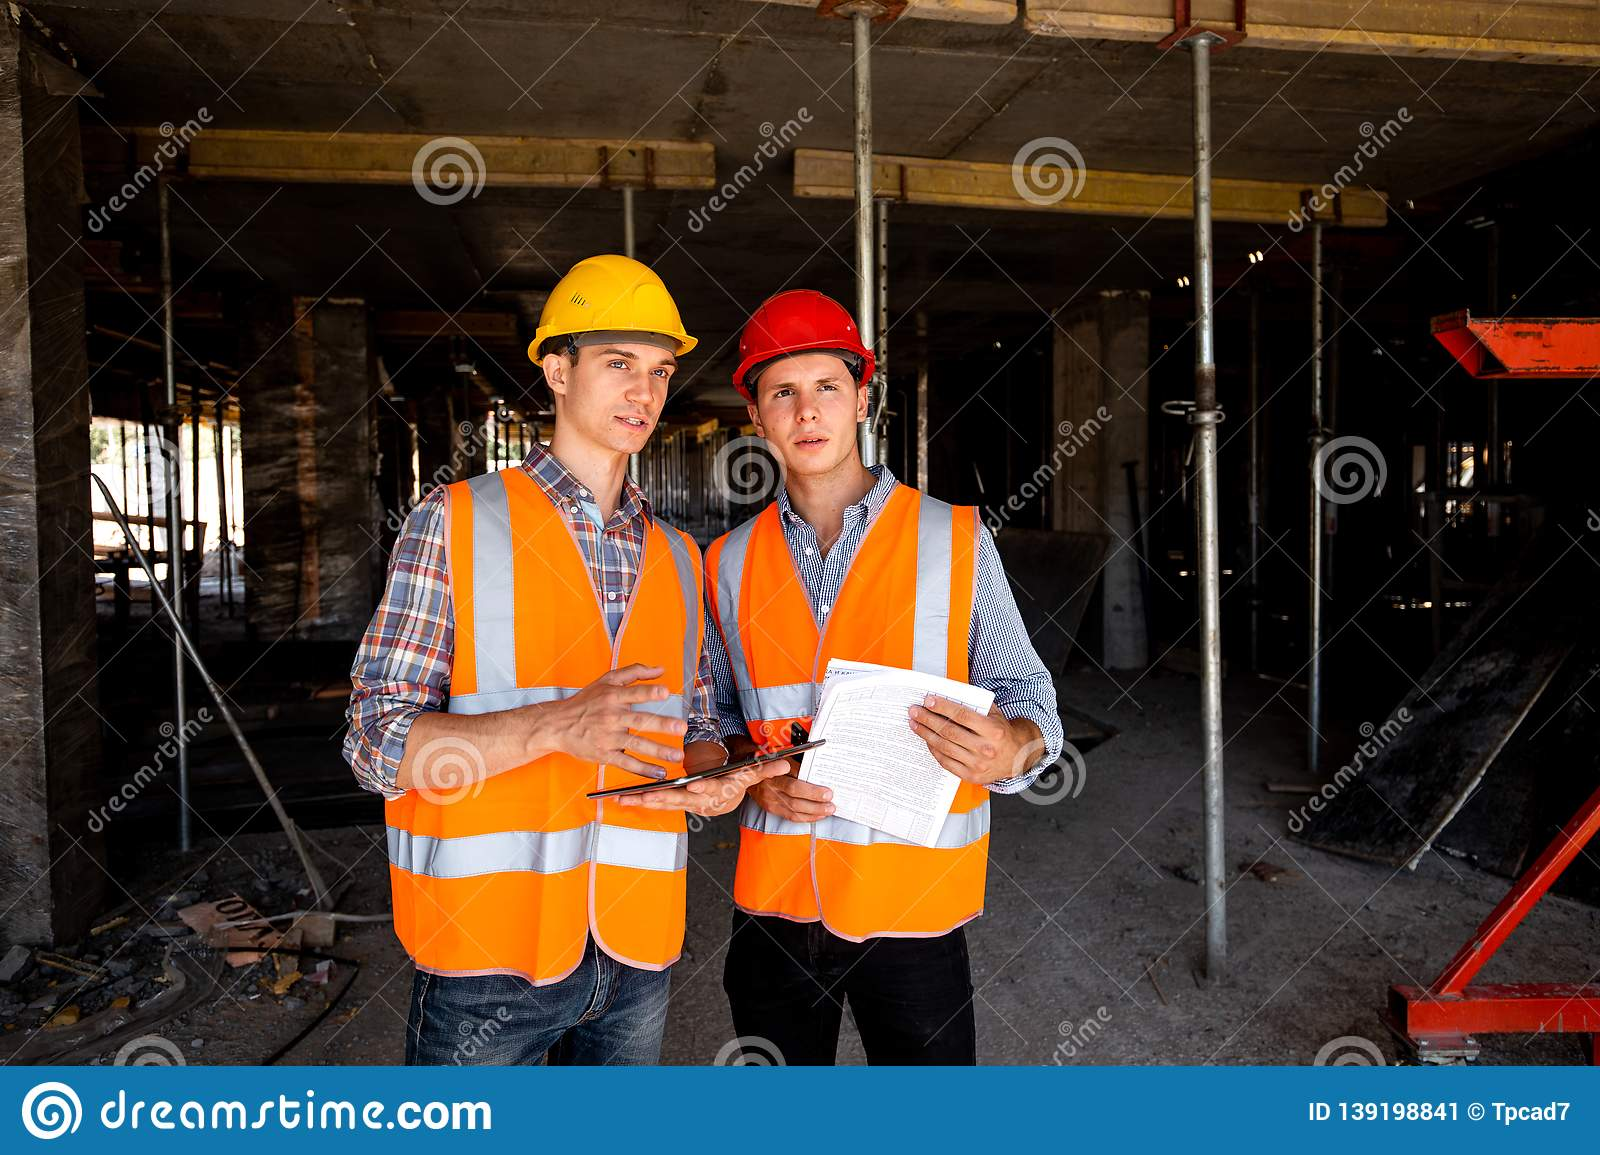 Two young civil engineers dressed in orange work vests and helmets work with tablet and documentation inside the